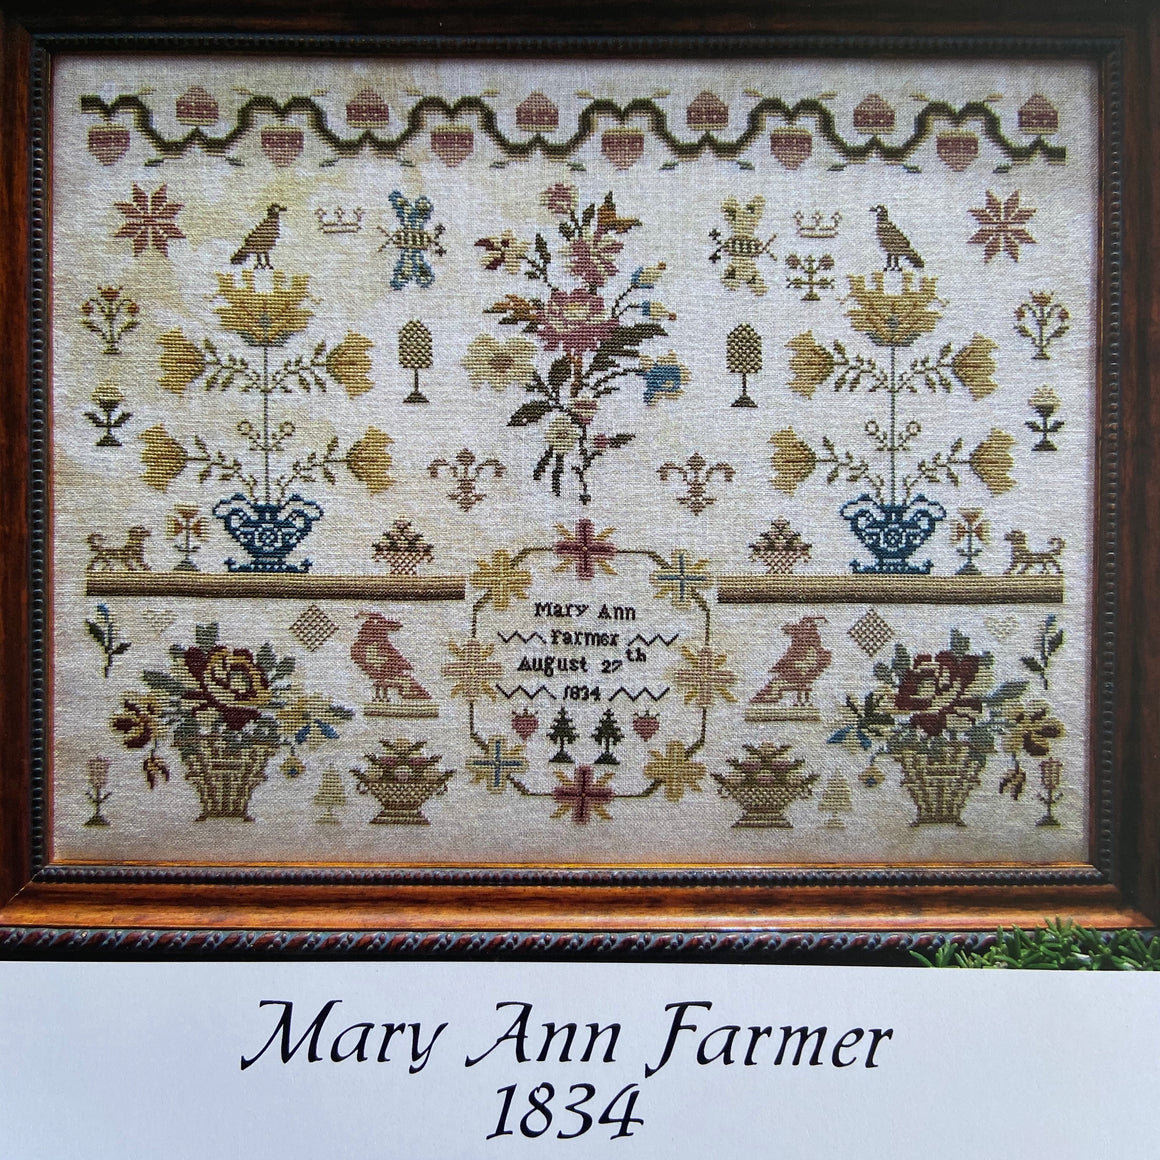 Mary Ann Farmer 1834